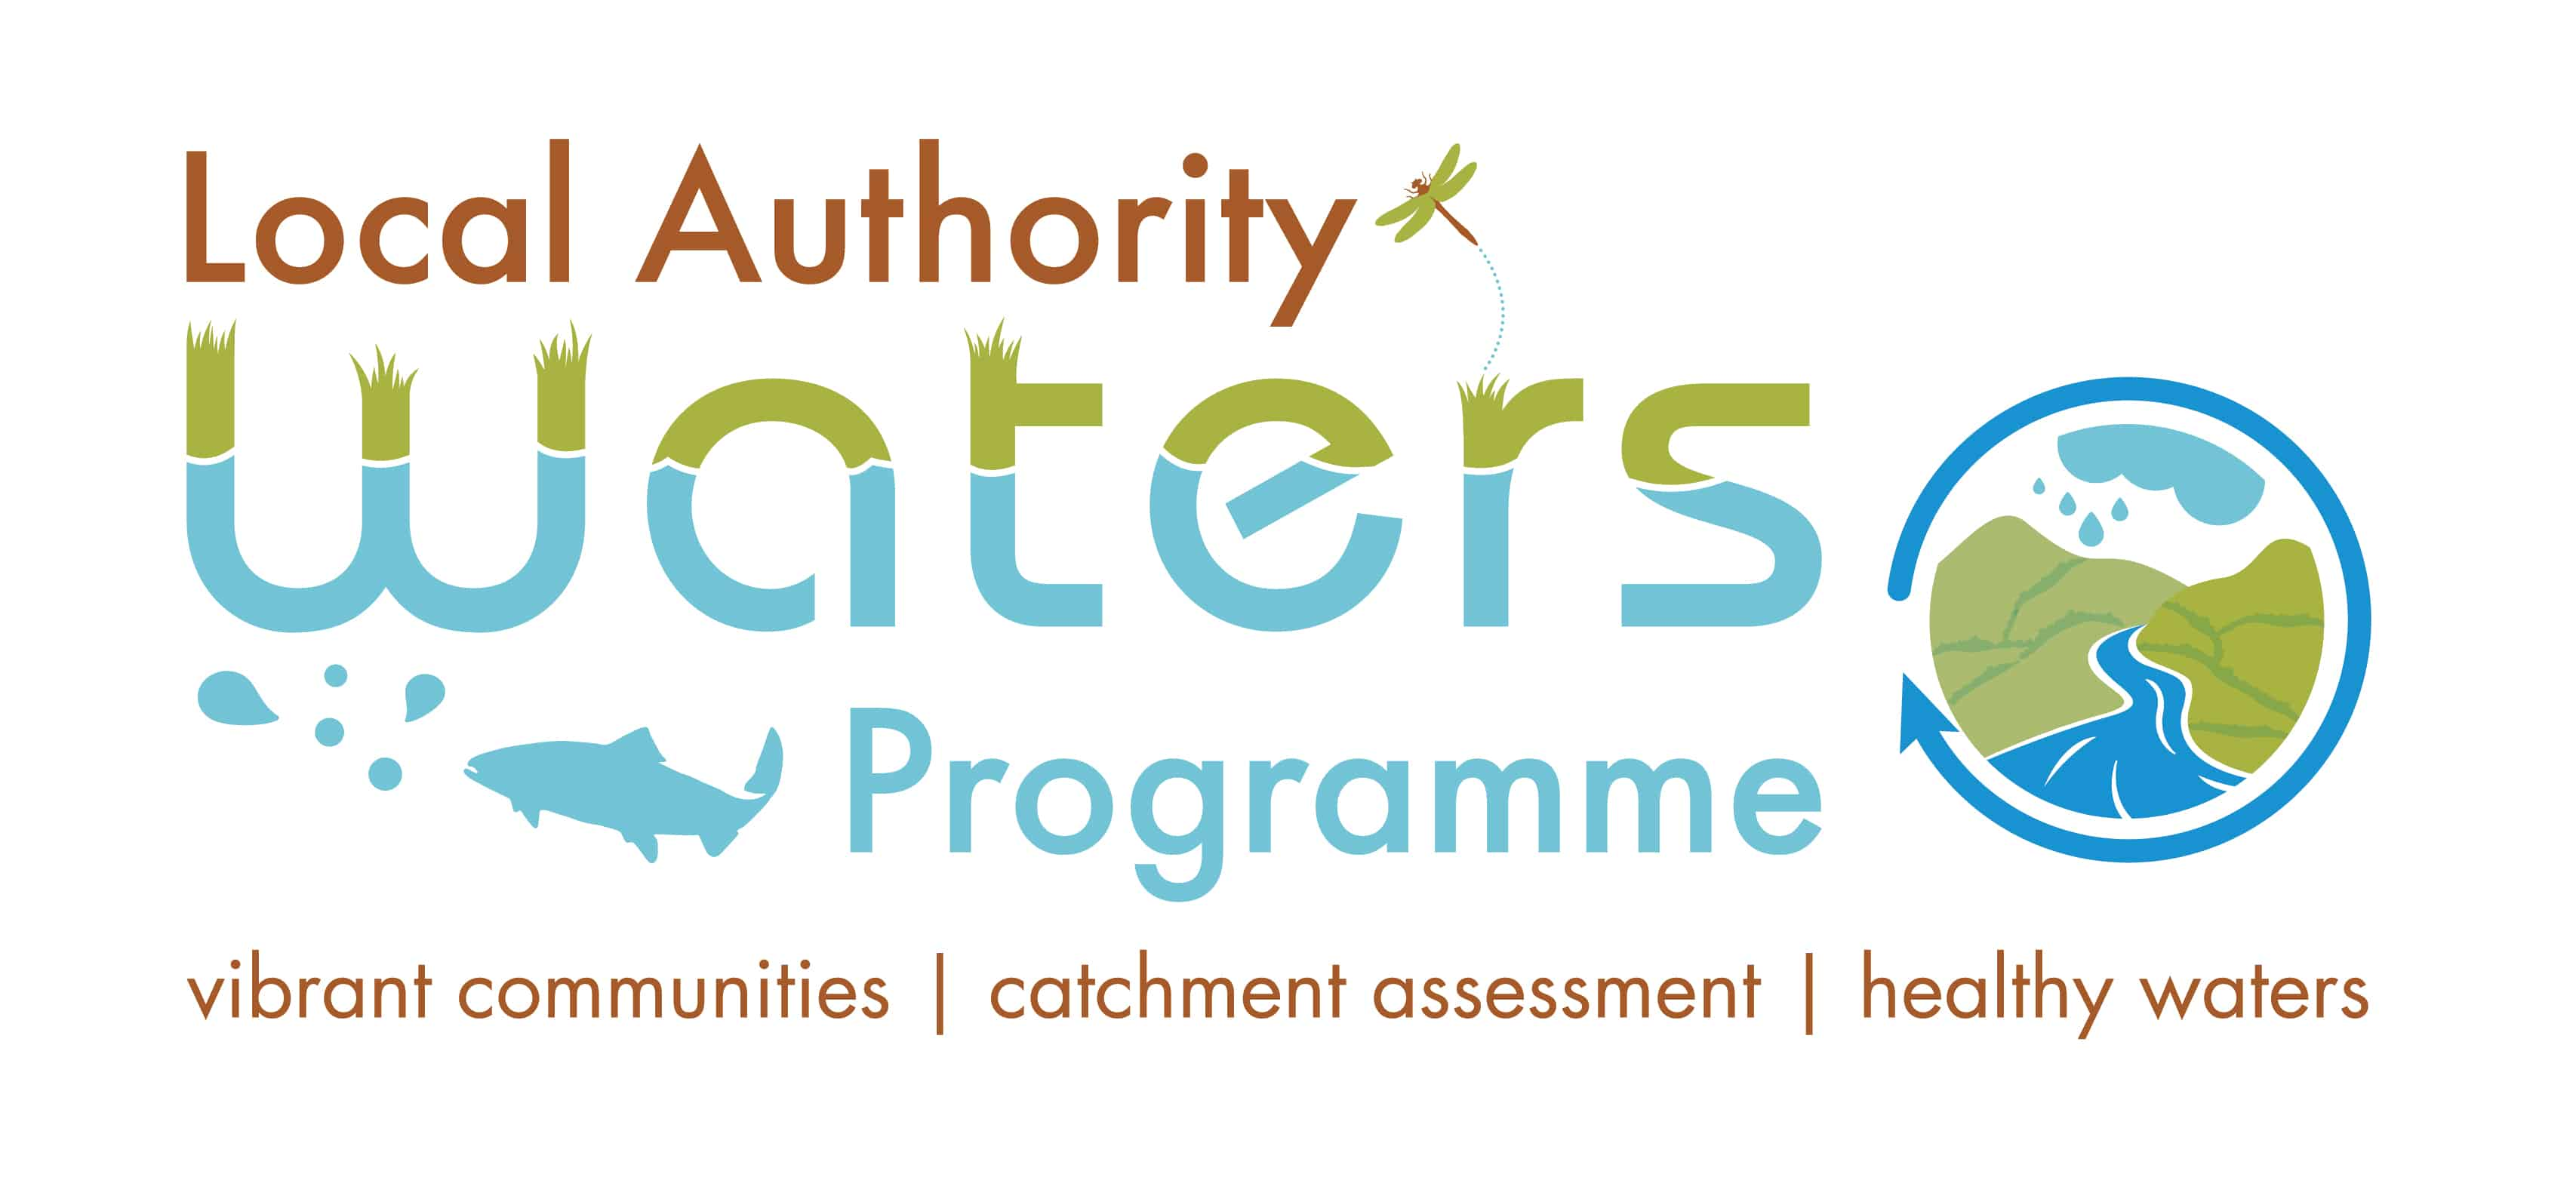 LA WATERS PROGRAMME LOGO